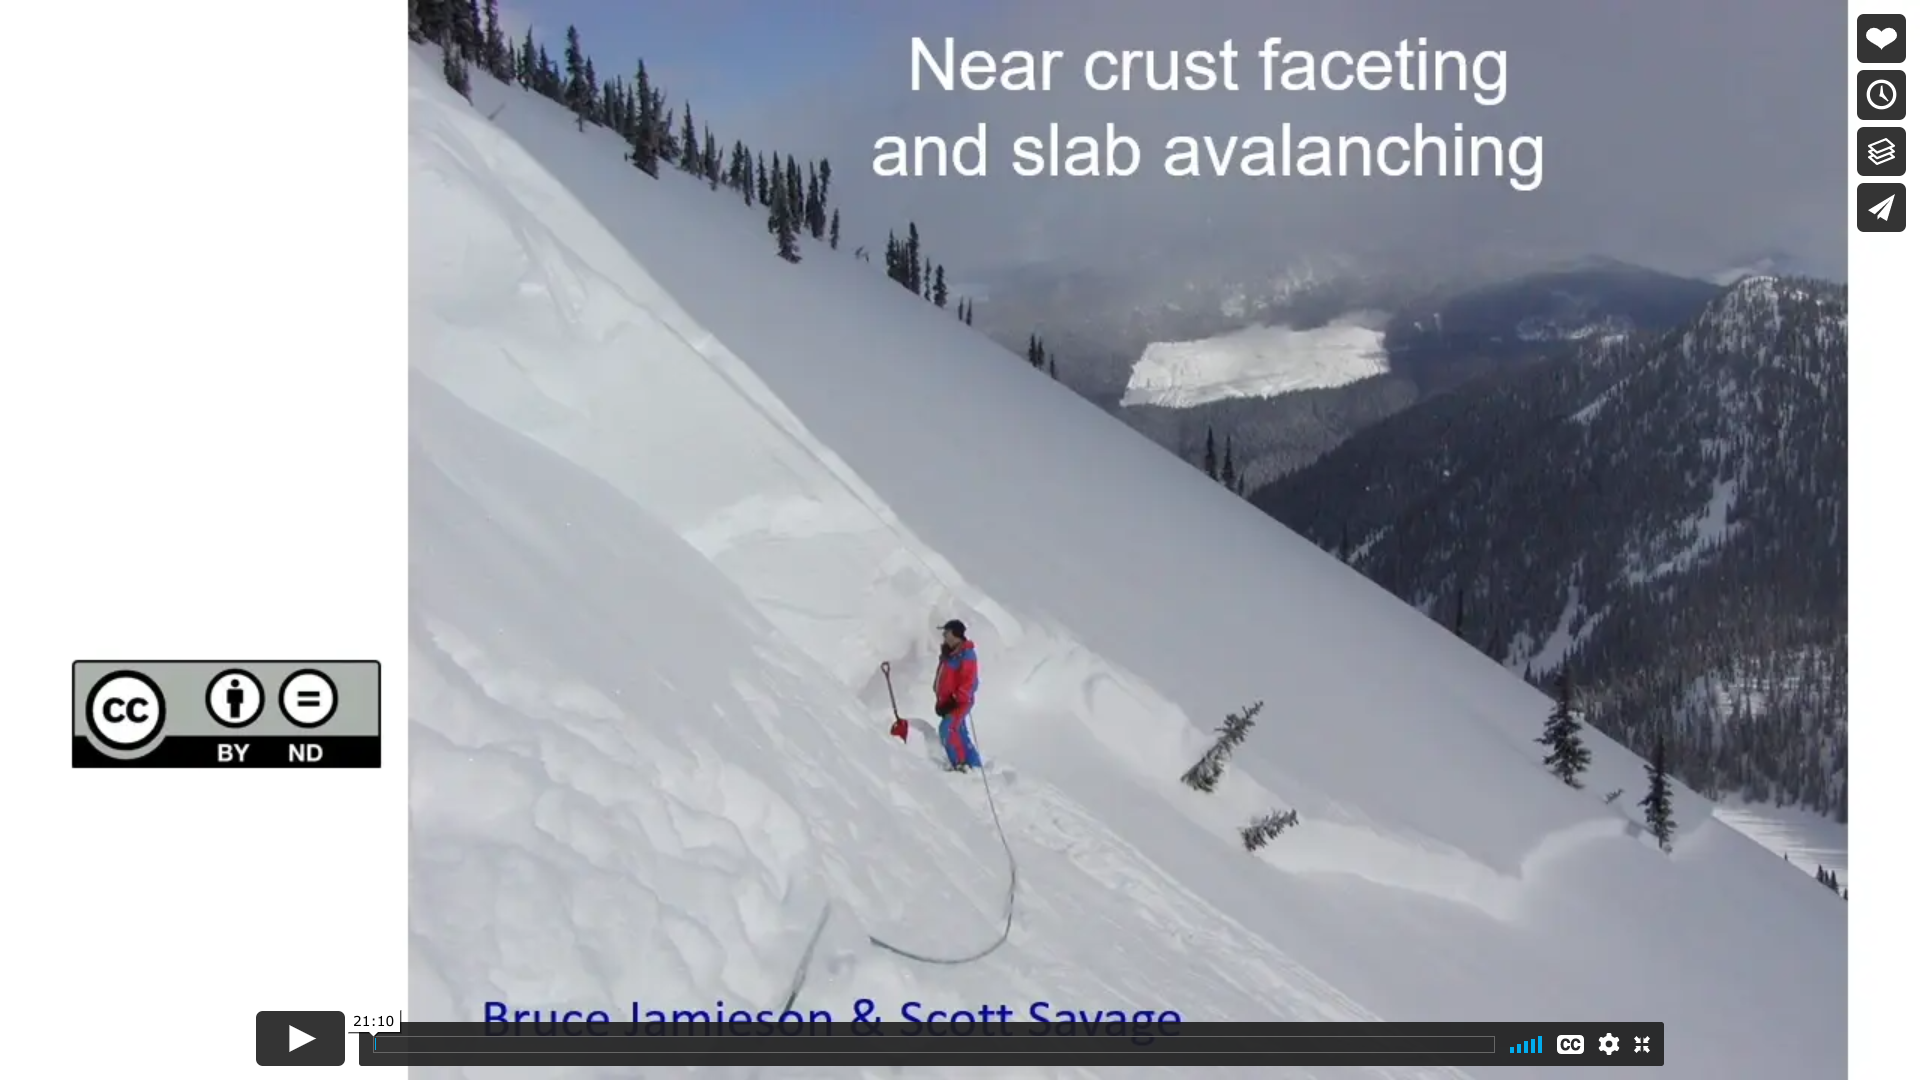 Near crust faceting and slab avalanching with Bruce Jamieson and Scott Savage